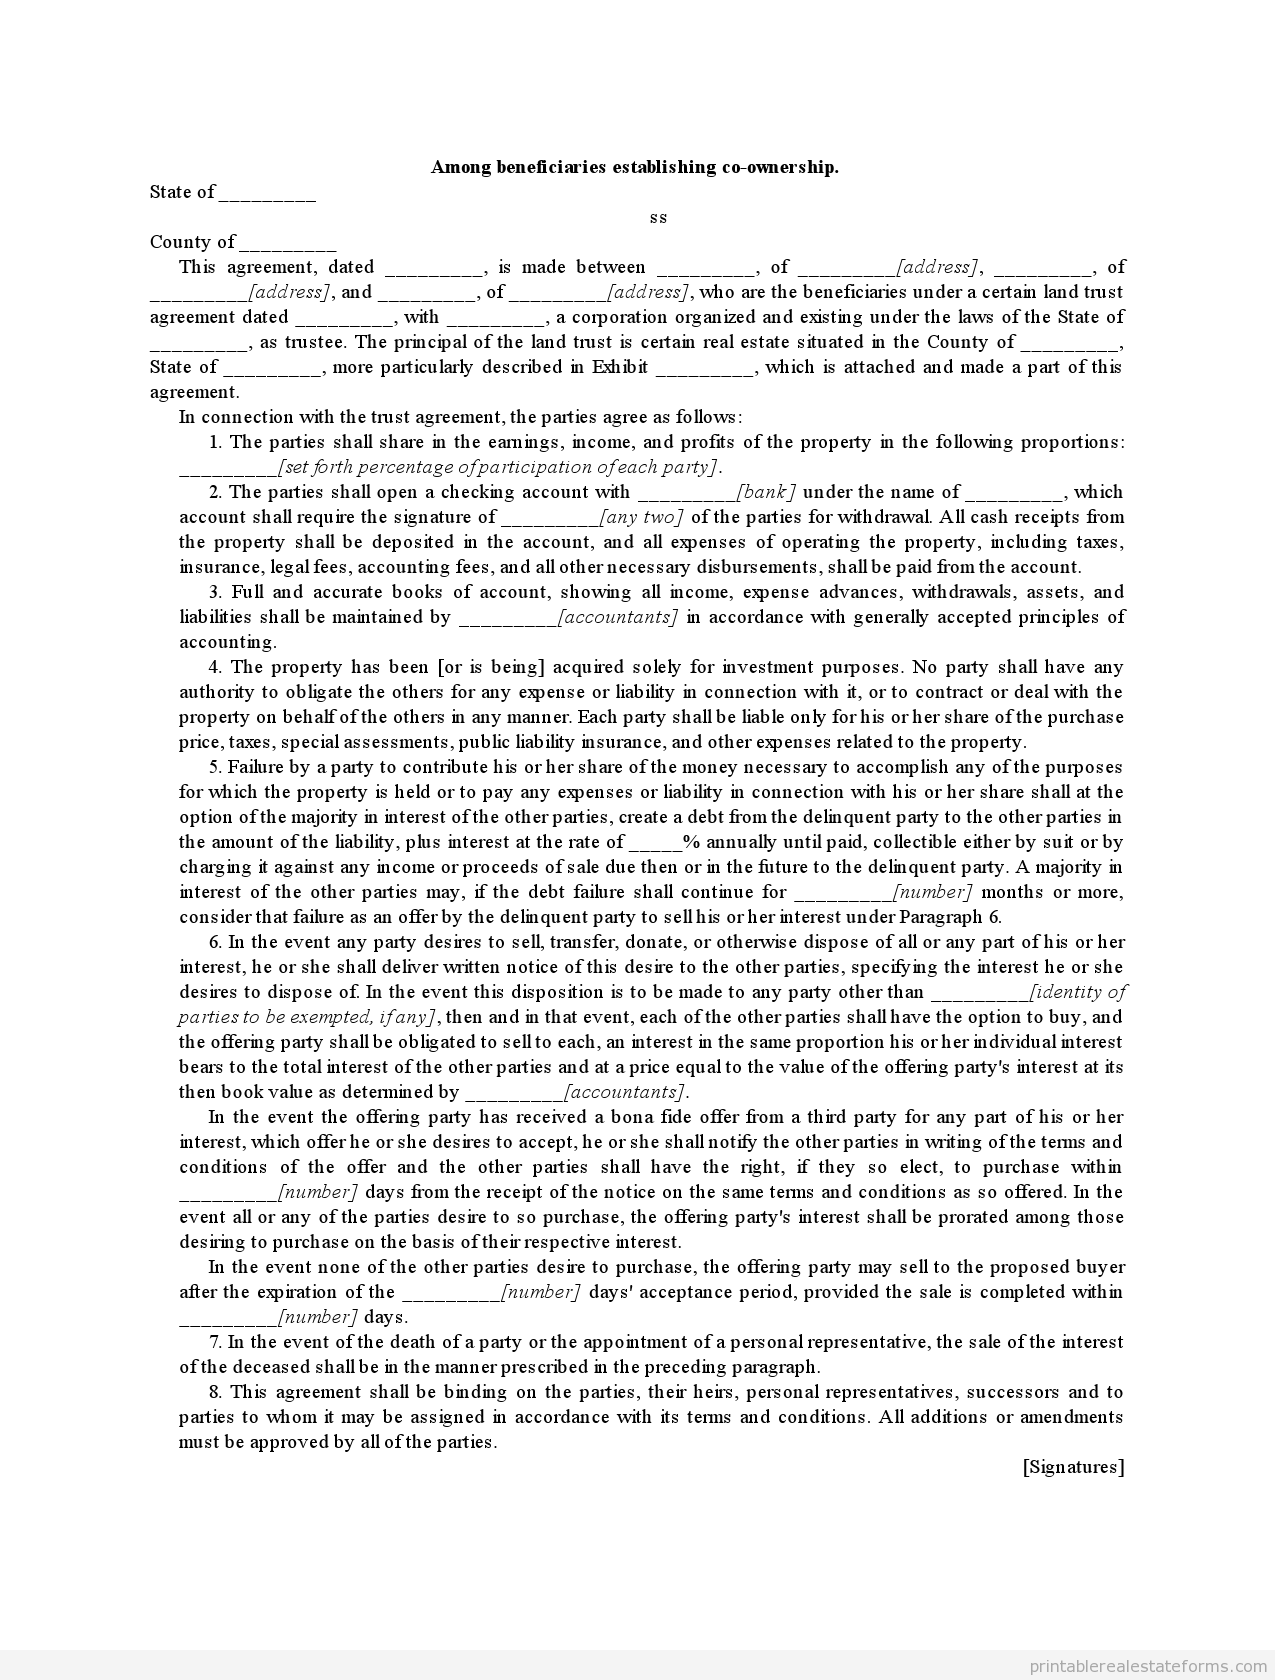 sample printable among beneficiaries establishing co ownership sample printable among beneficiaries establishing co ownership form